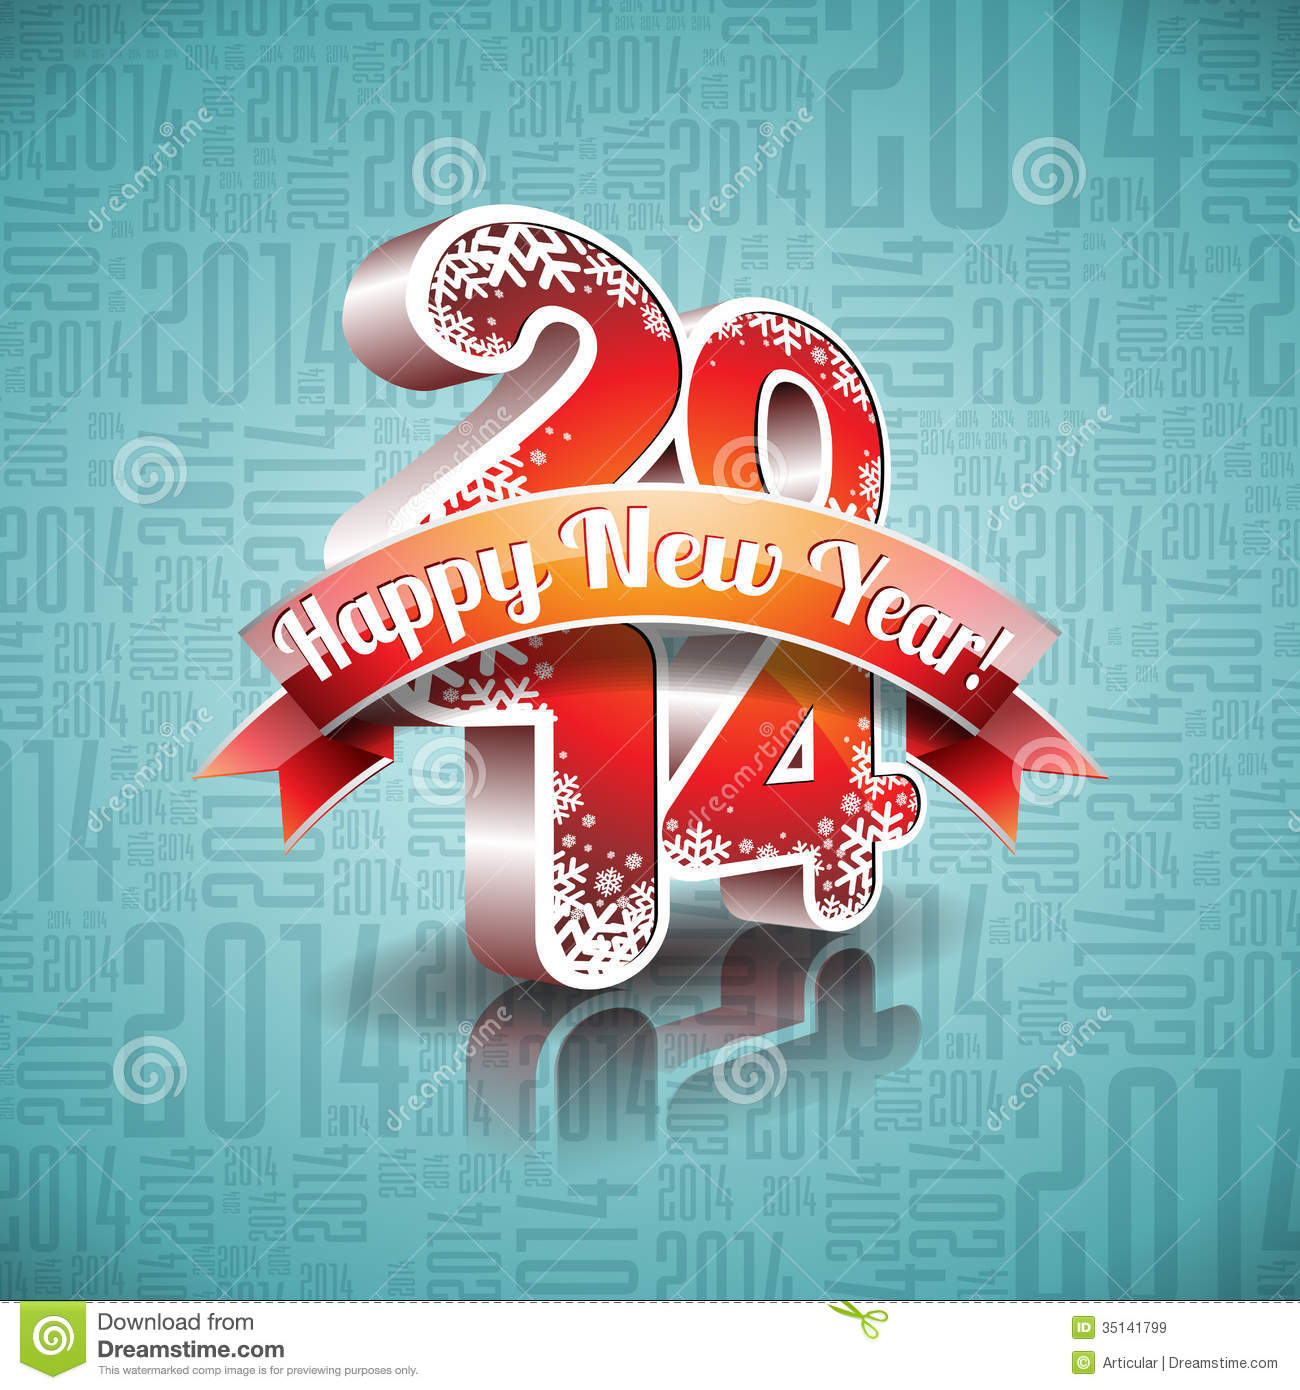 vector happy new year 2014 design with ribbon on typographic background